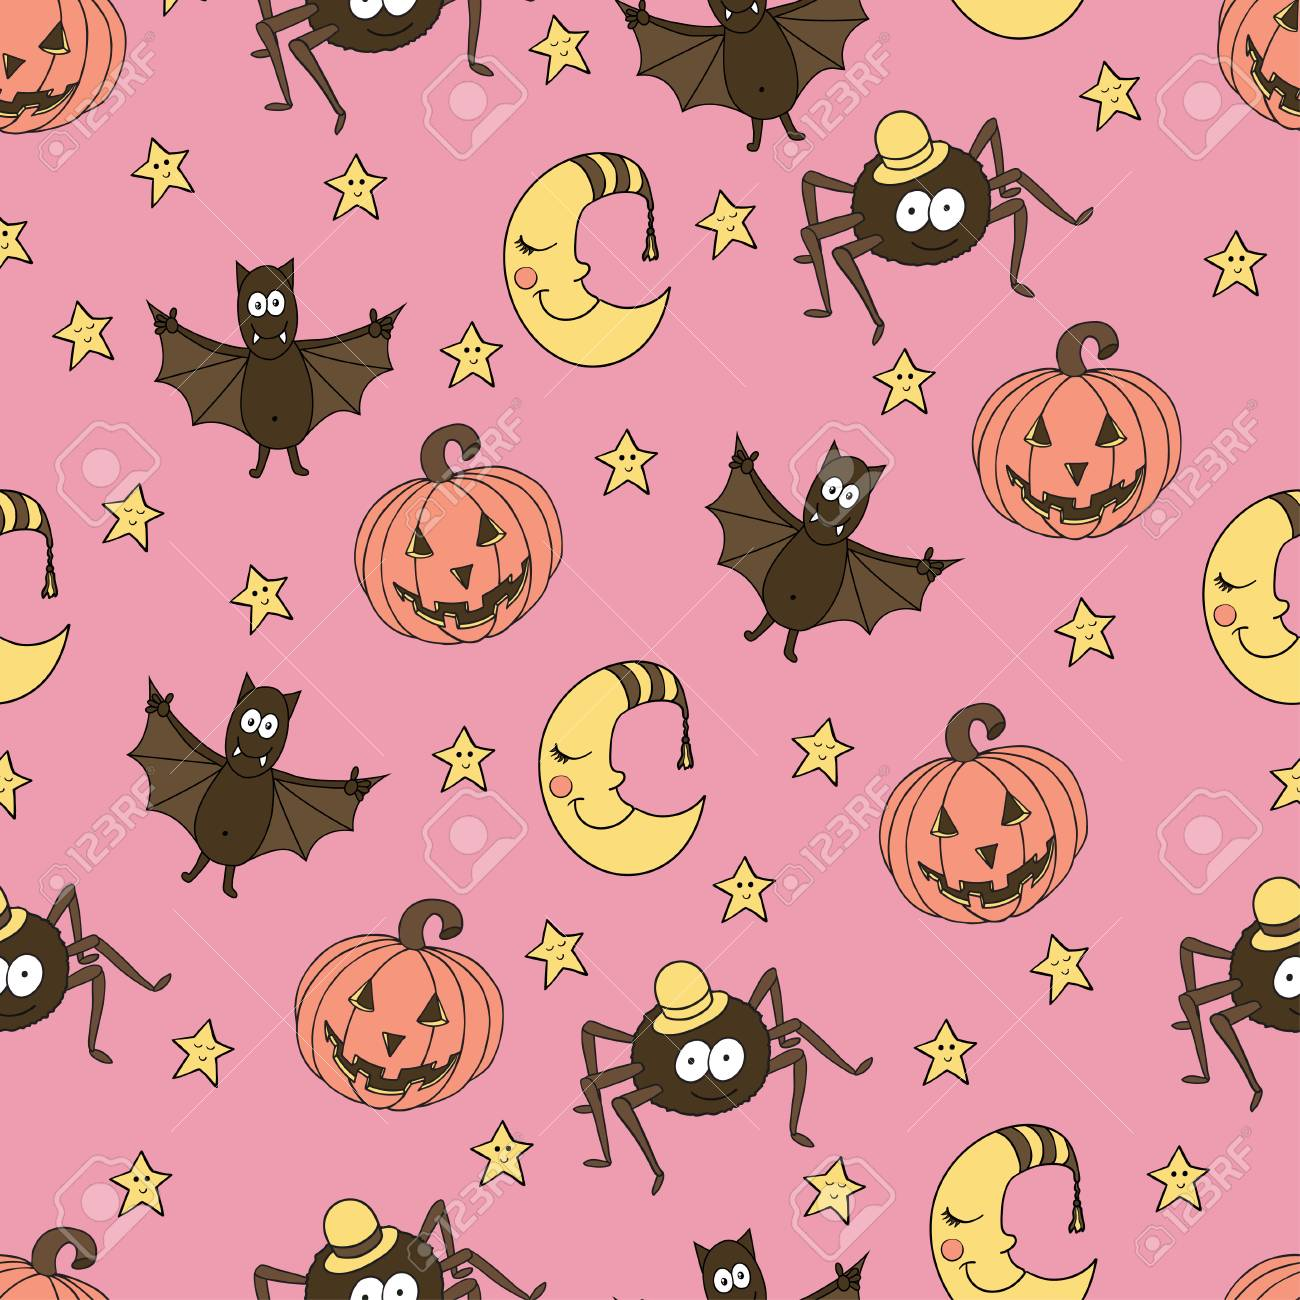 Fantastic Unusual Seamless Halloween Pattern With Pumpkins Bats Spiders Moons And Stars